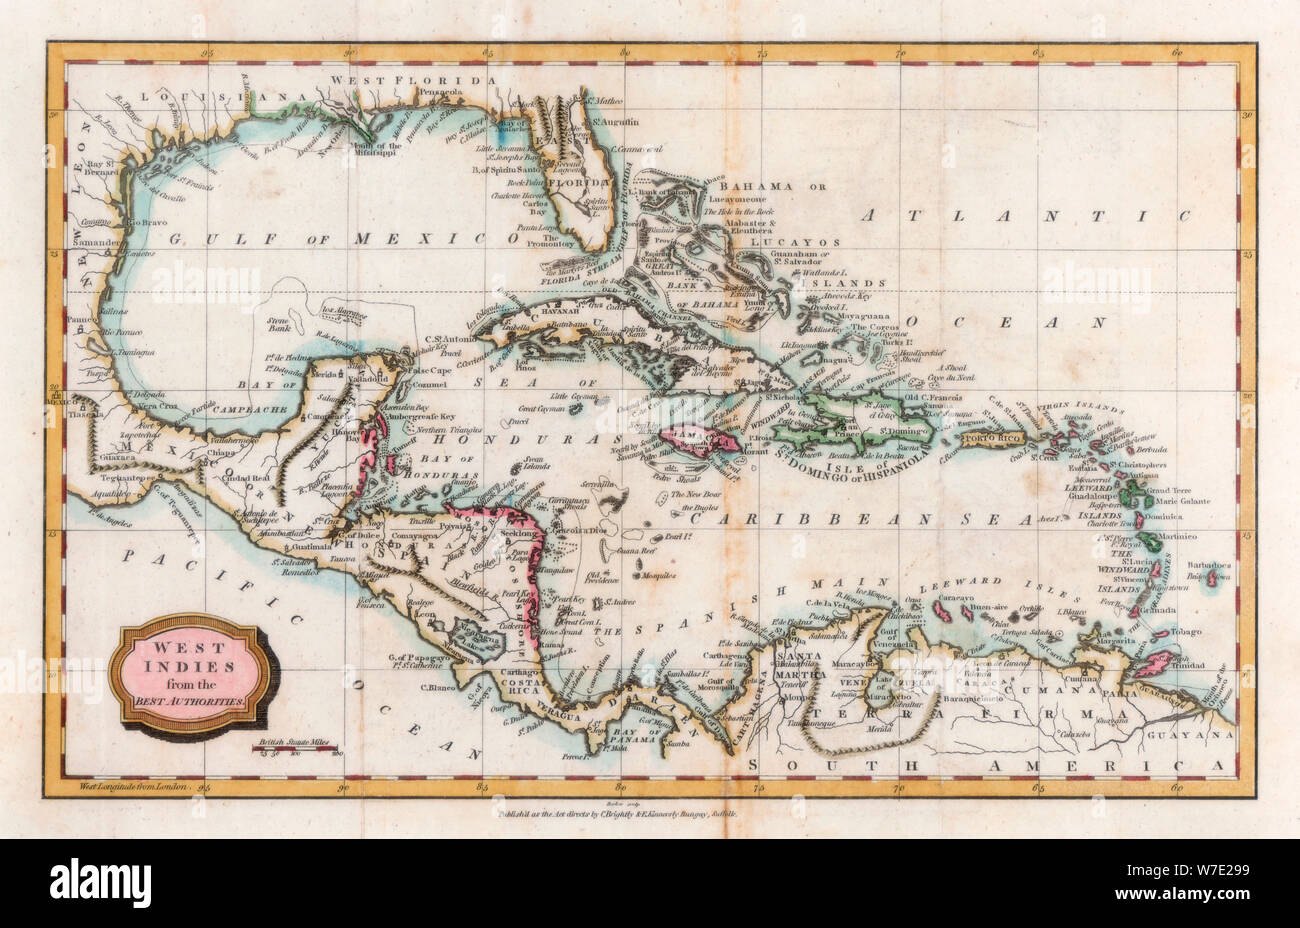 Map of the West Indies, 18th century(?).Artist: Barlow Stock Photo